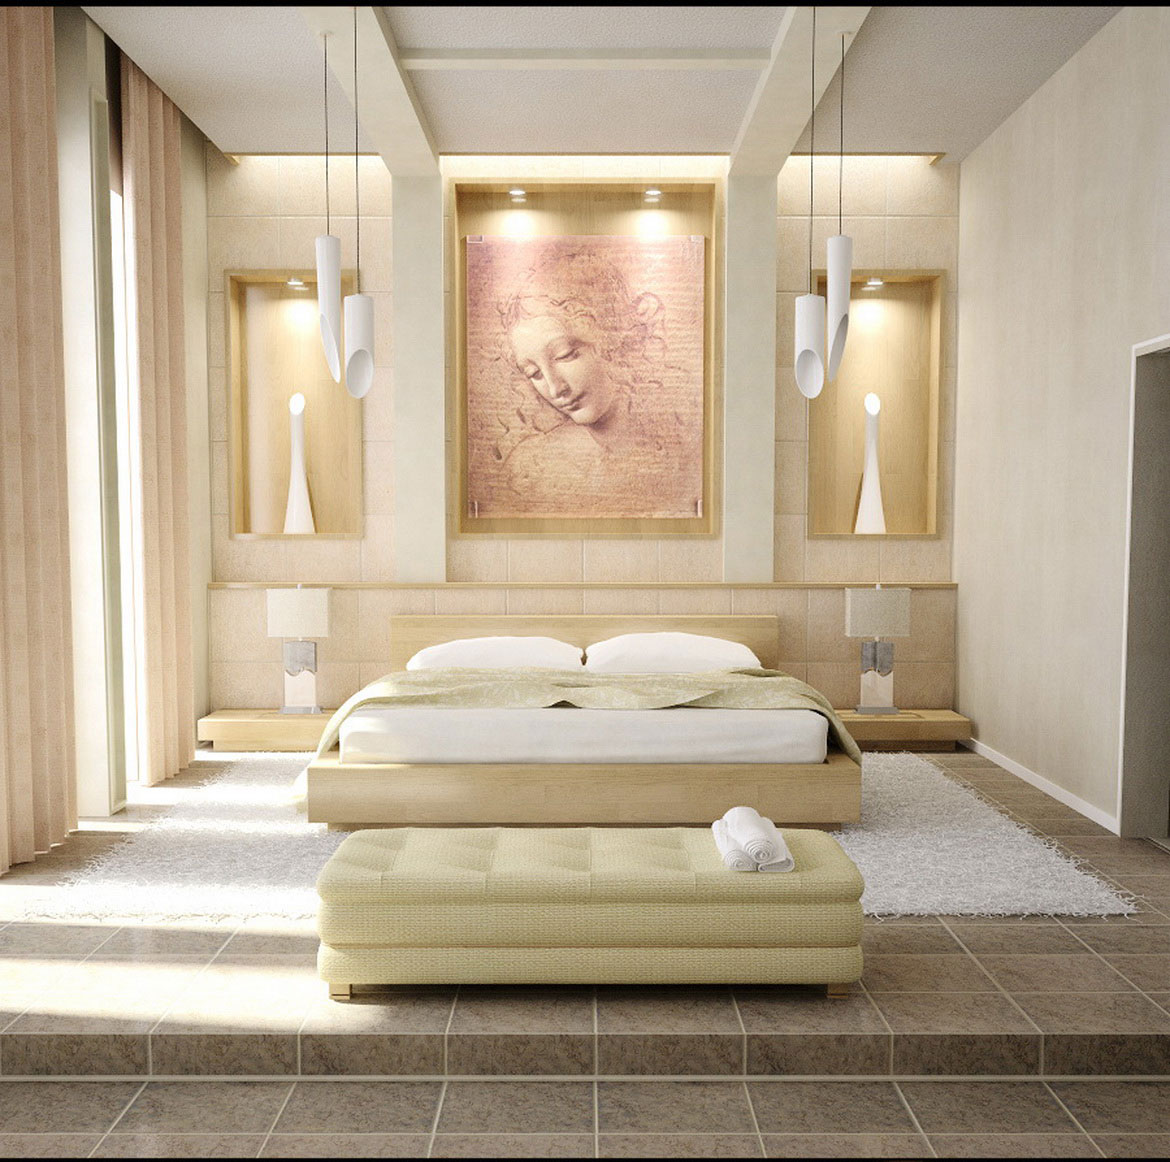 Luxury Bedroom Interior Modern Design Master Bedroom Bedroom Interior In Oriental Style